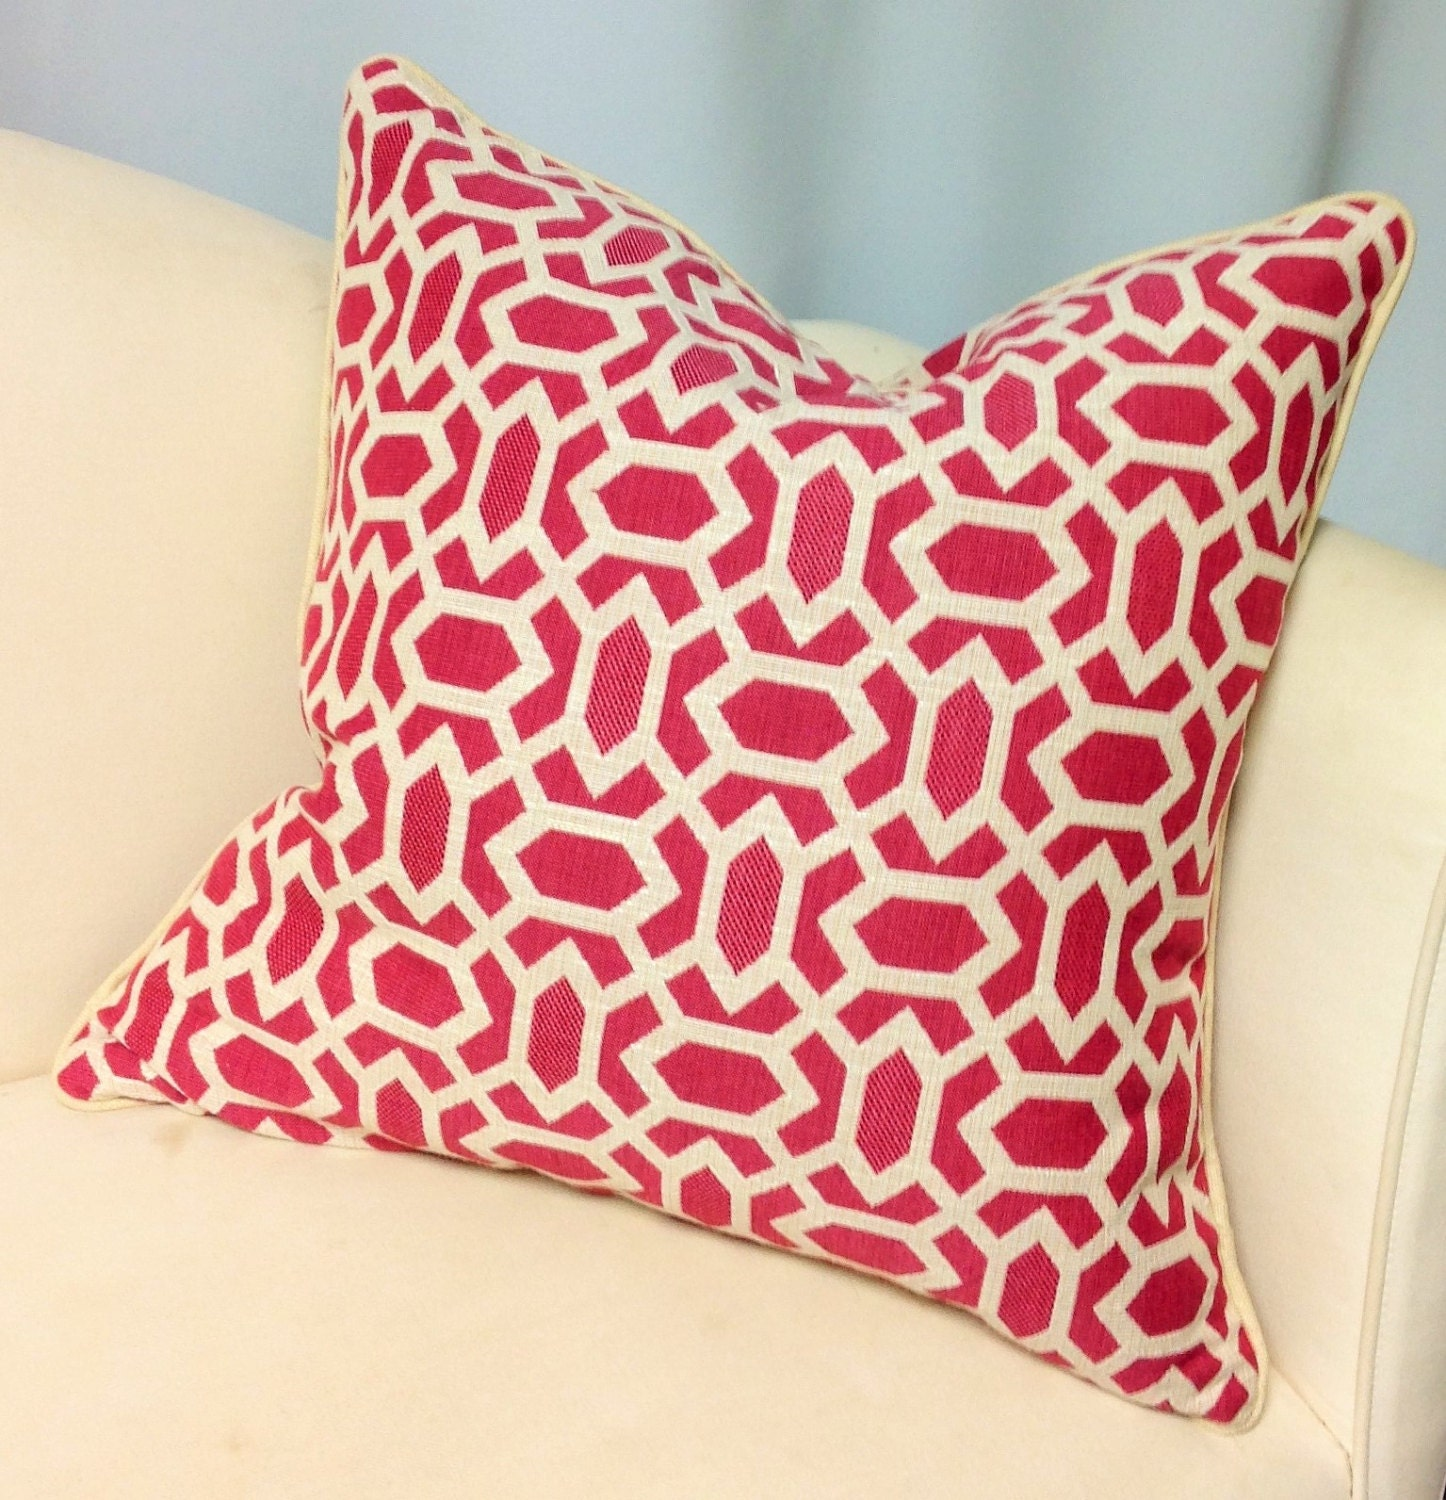 How To Make Decorative Pillows With Cording : Decorative Pillow WITH Cording Invisible Zipper Down